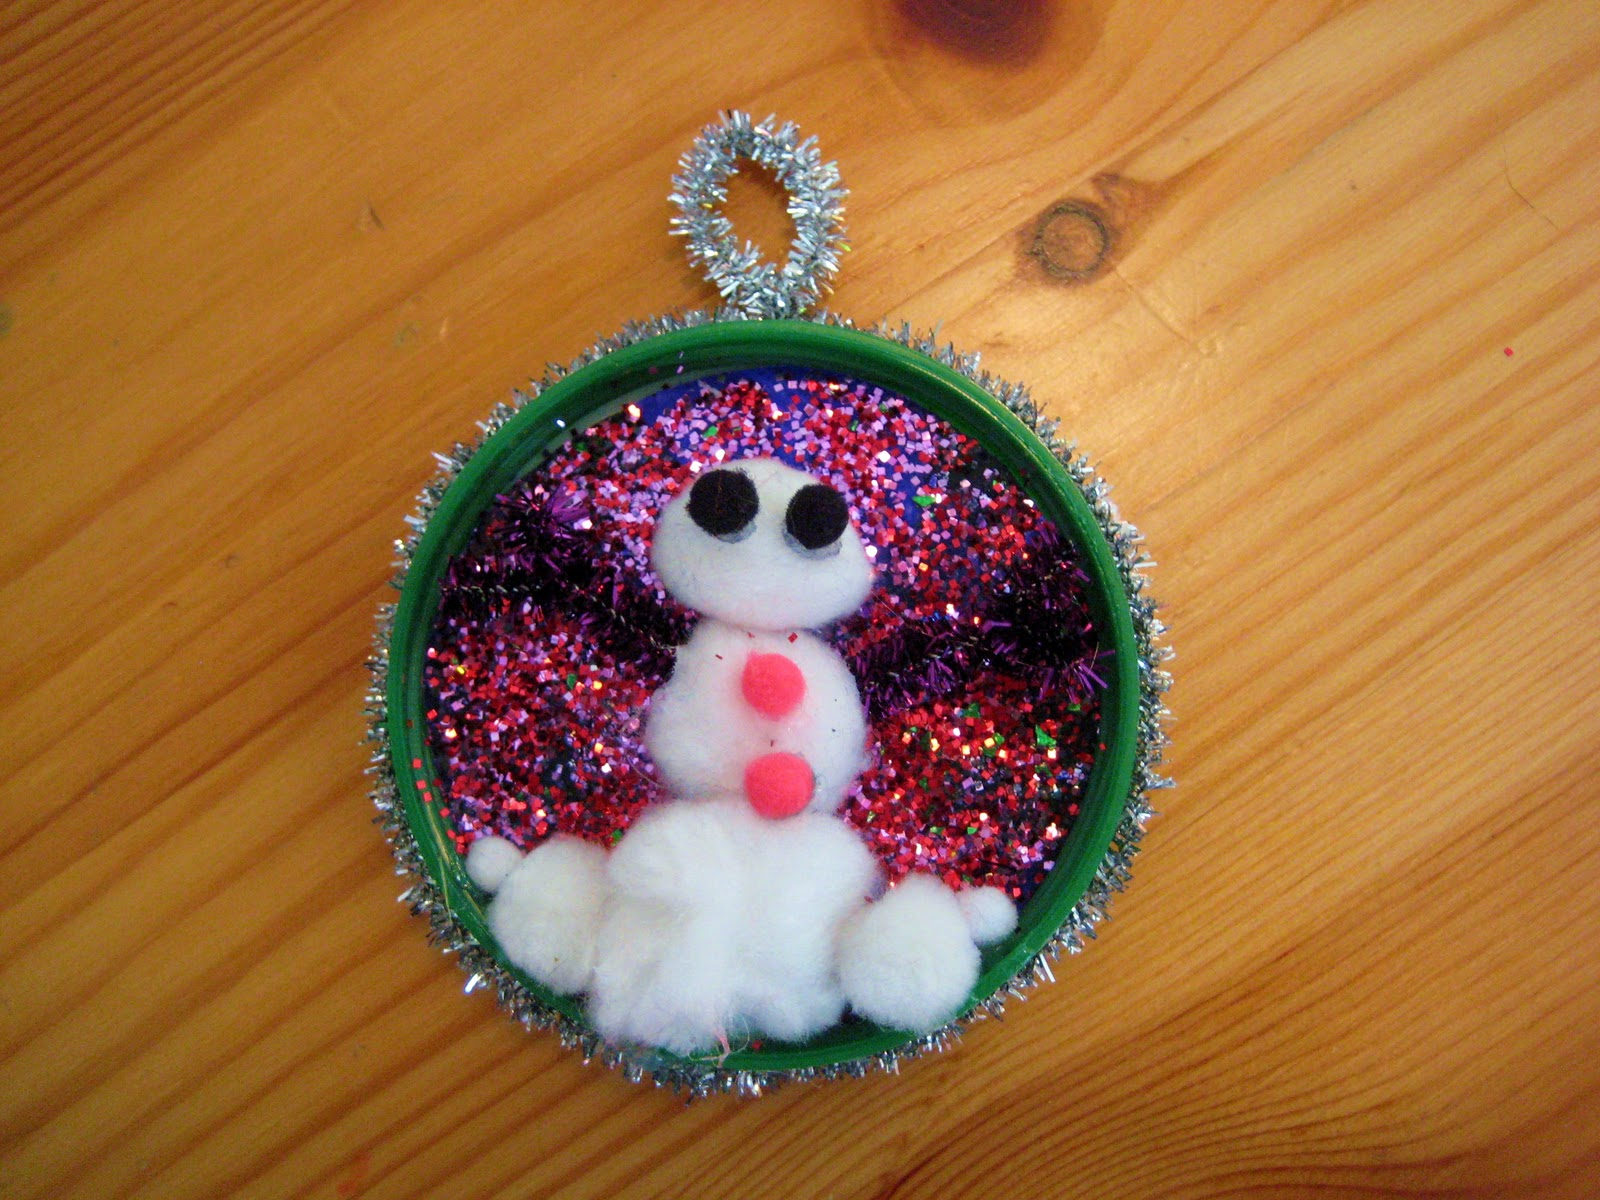 Crazy kings recycled holiday ornament craft for kids